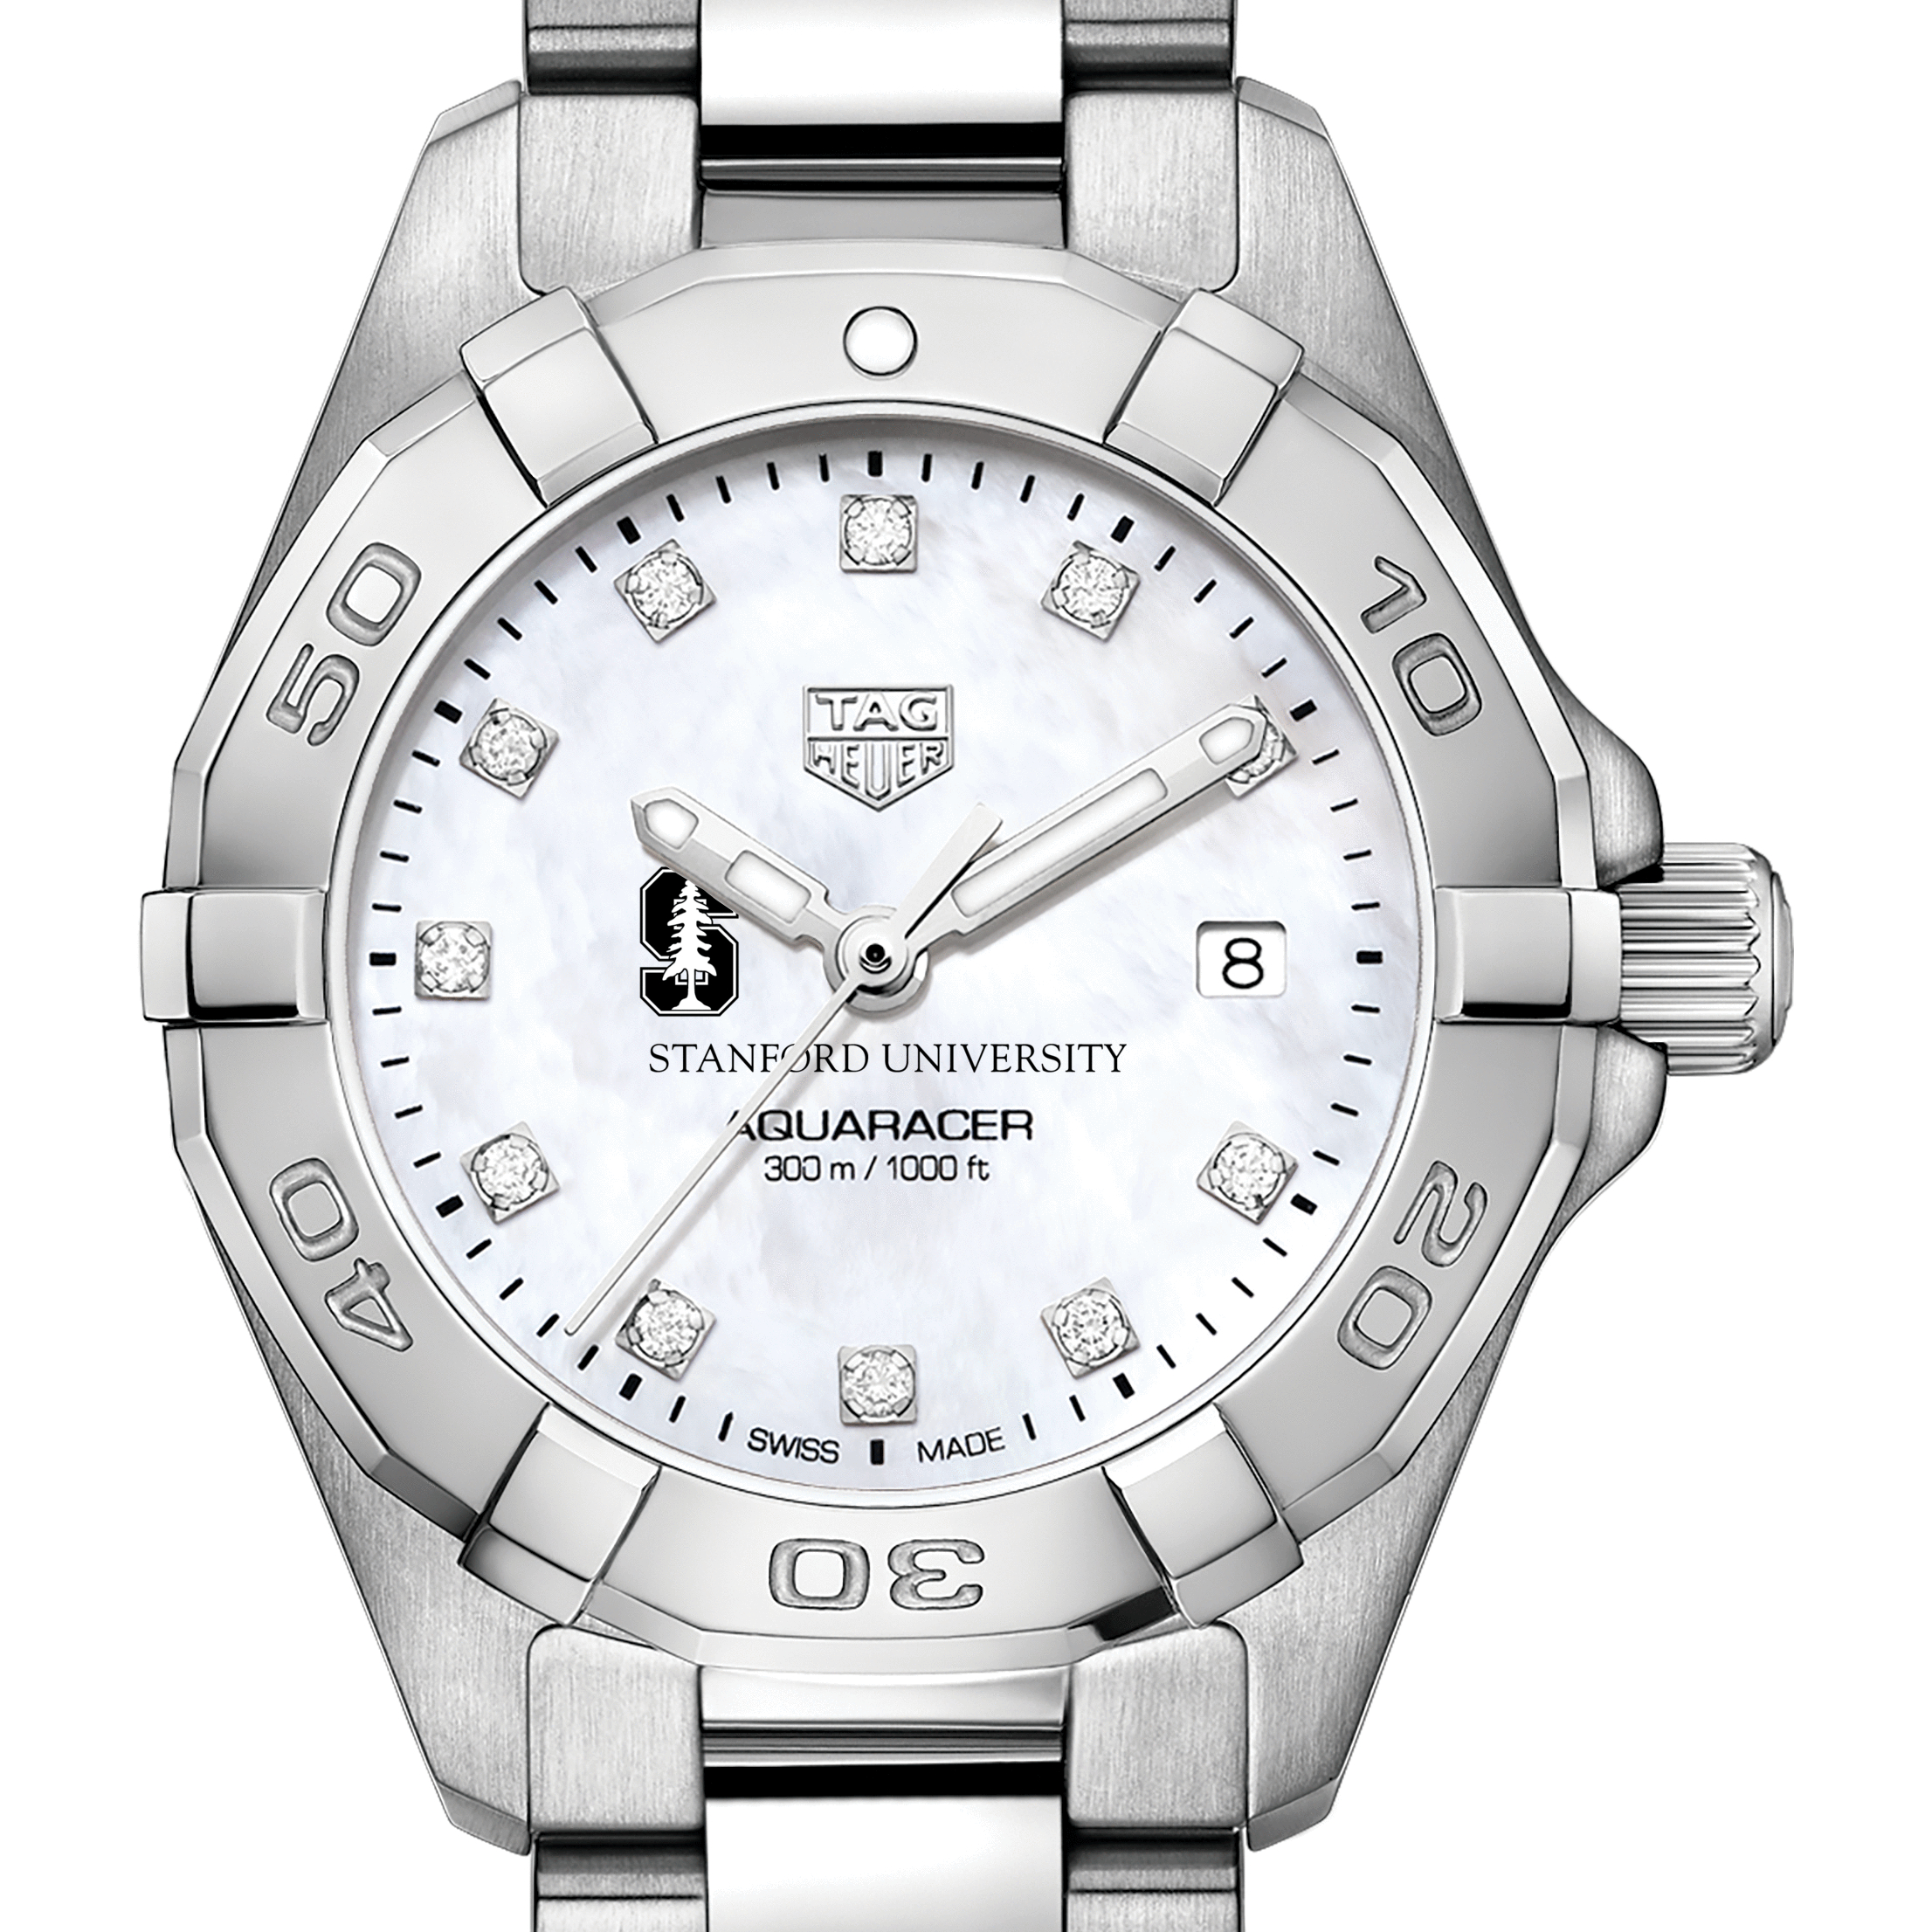 Stanford University Women's TAG Heuer Steel Aquaracer with MOP Diamond Dial